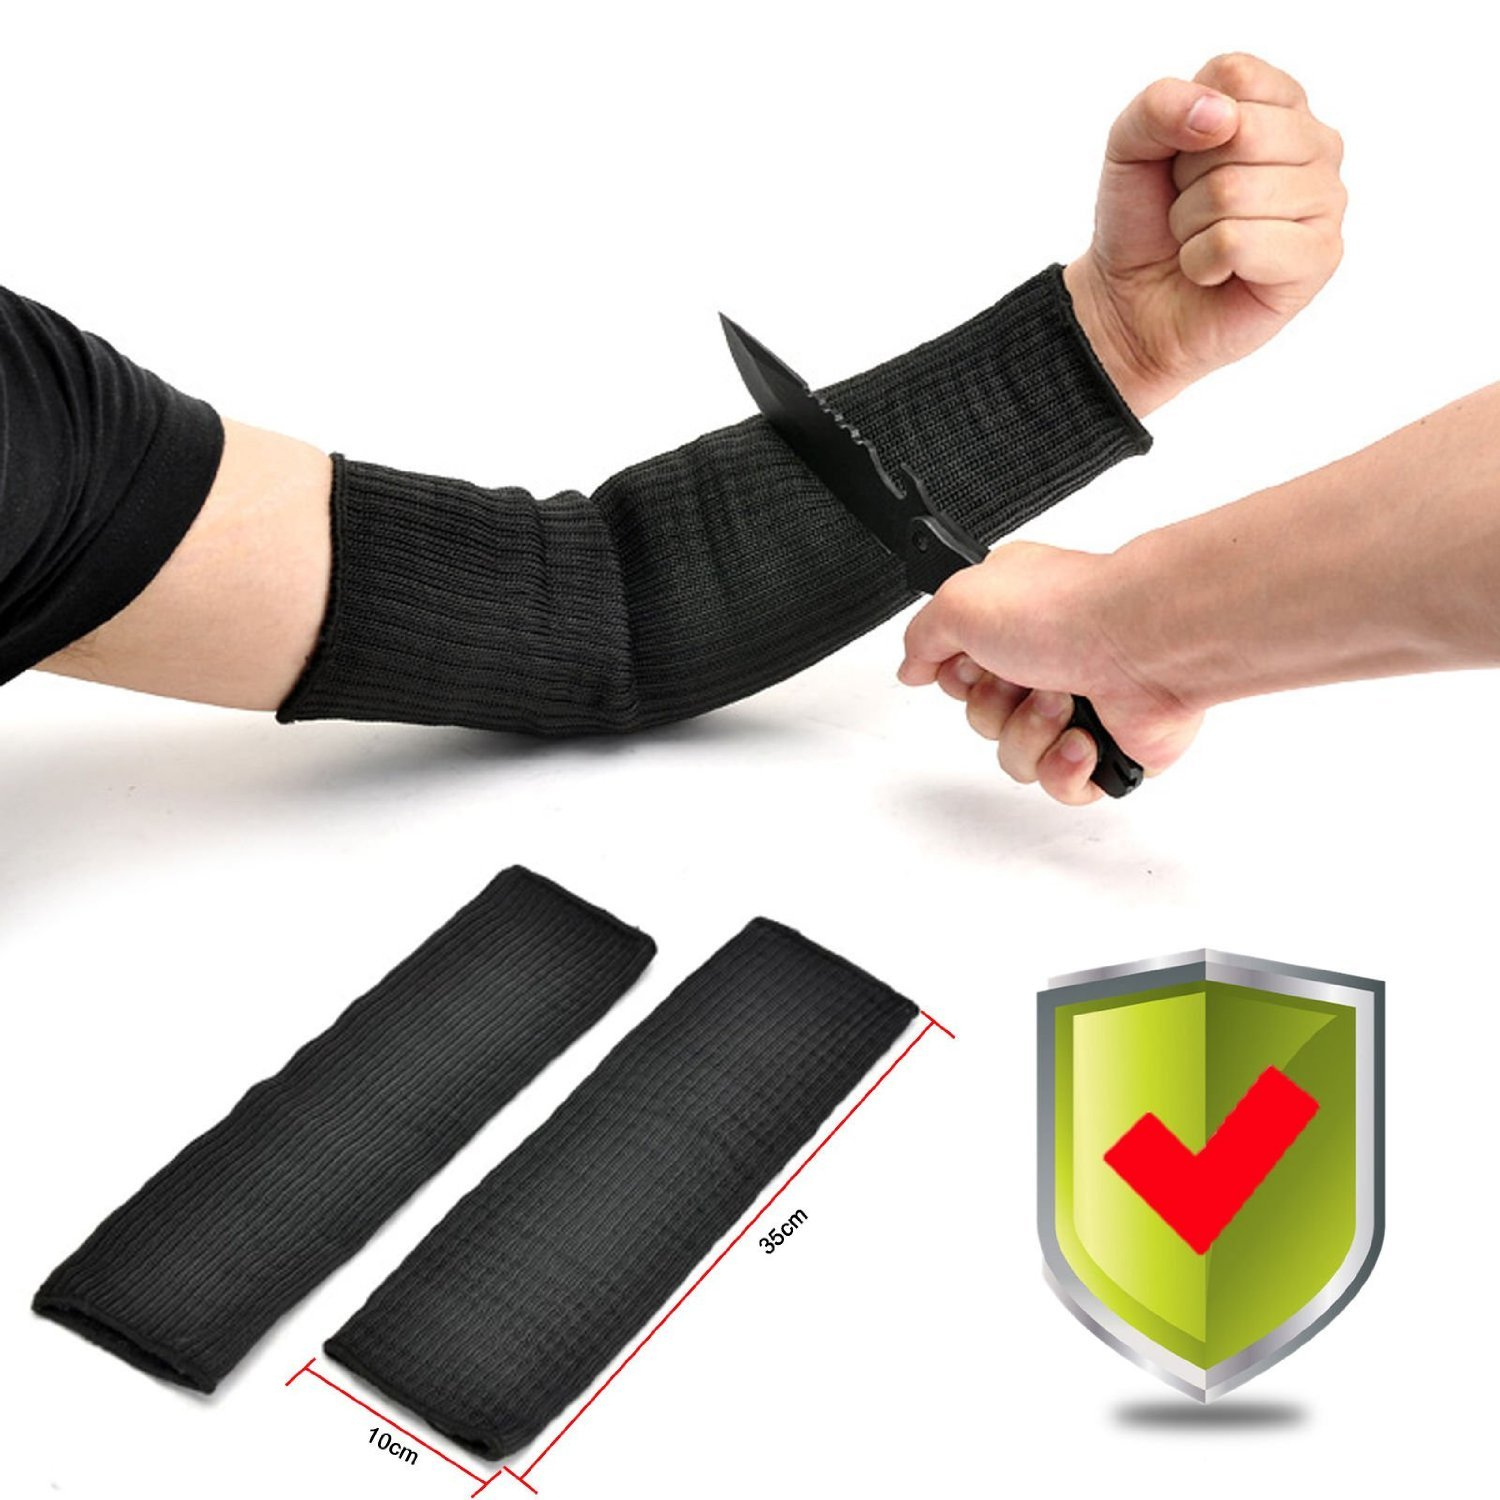 Protective Arm Sleeves Yosoo 1 Pair Steel Wire Tactical Cut Proof Armband Arm Guard Bracers Anti-Cut Burn Resistant Sleeves, Anti Abrasion Safety by Yosoo (Image #1)